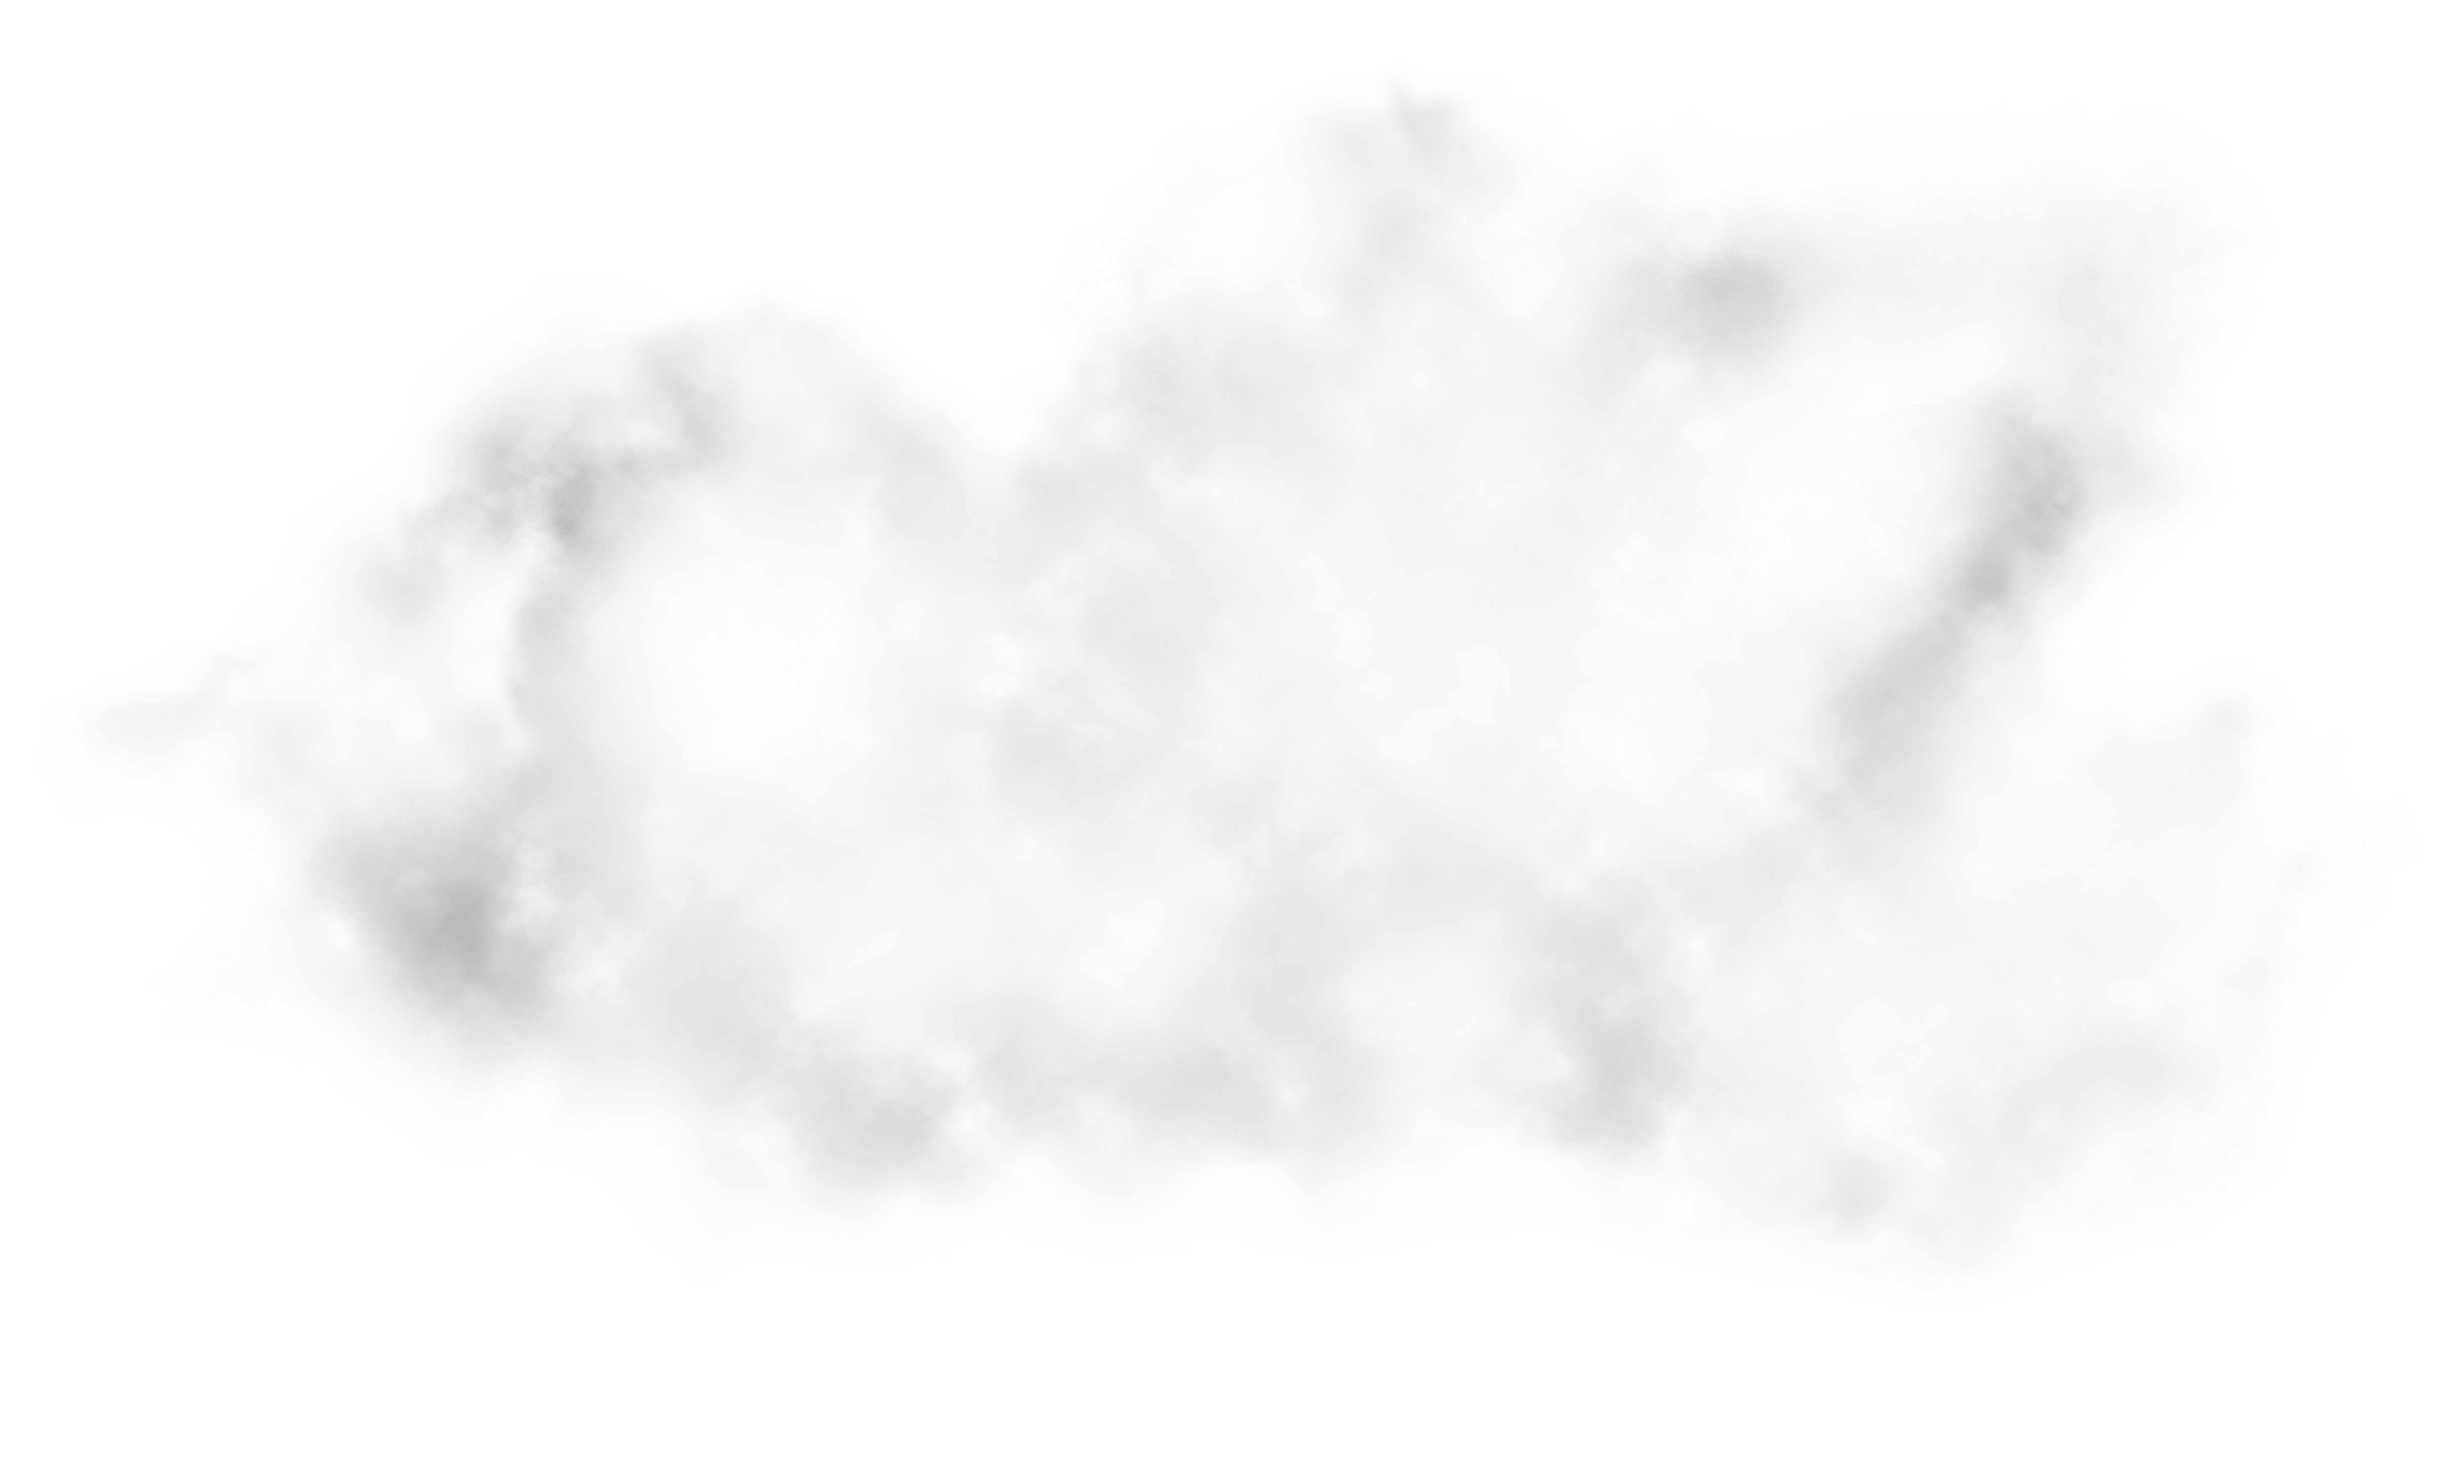 Sun coming out of dark clouds clipart vector black and white download Downy Cloud PNG Clipart - Best WEB Clipart vector black and white download